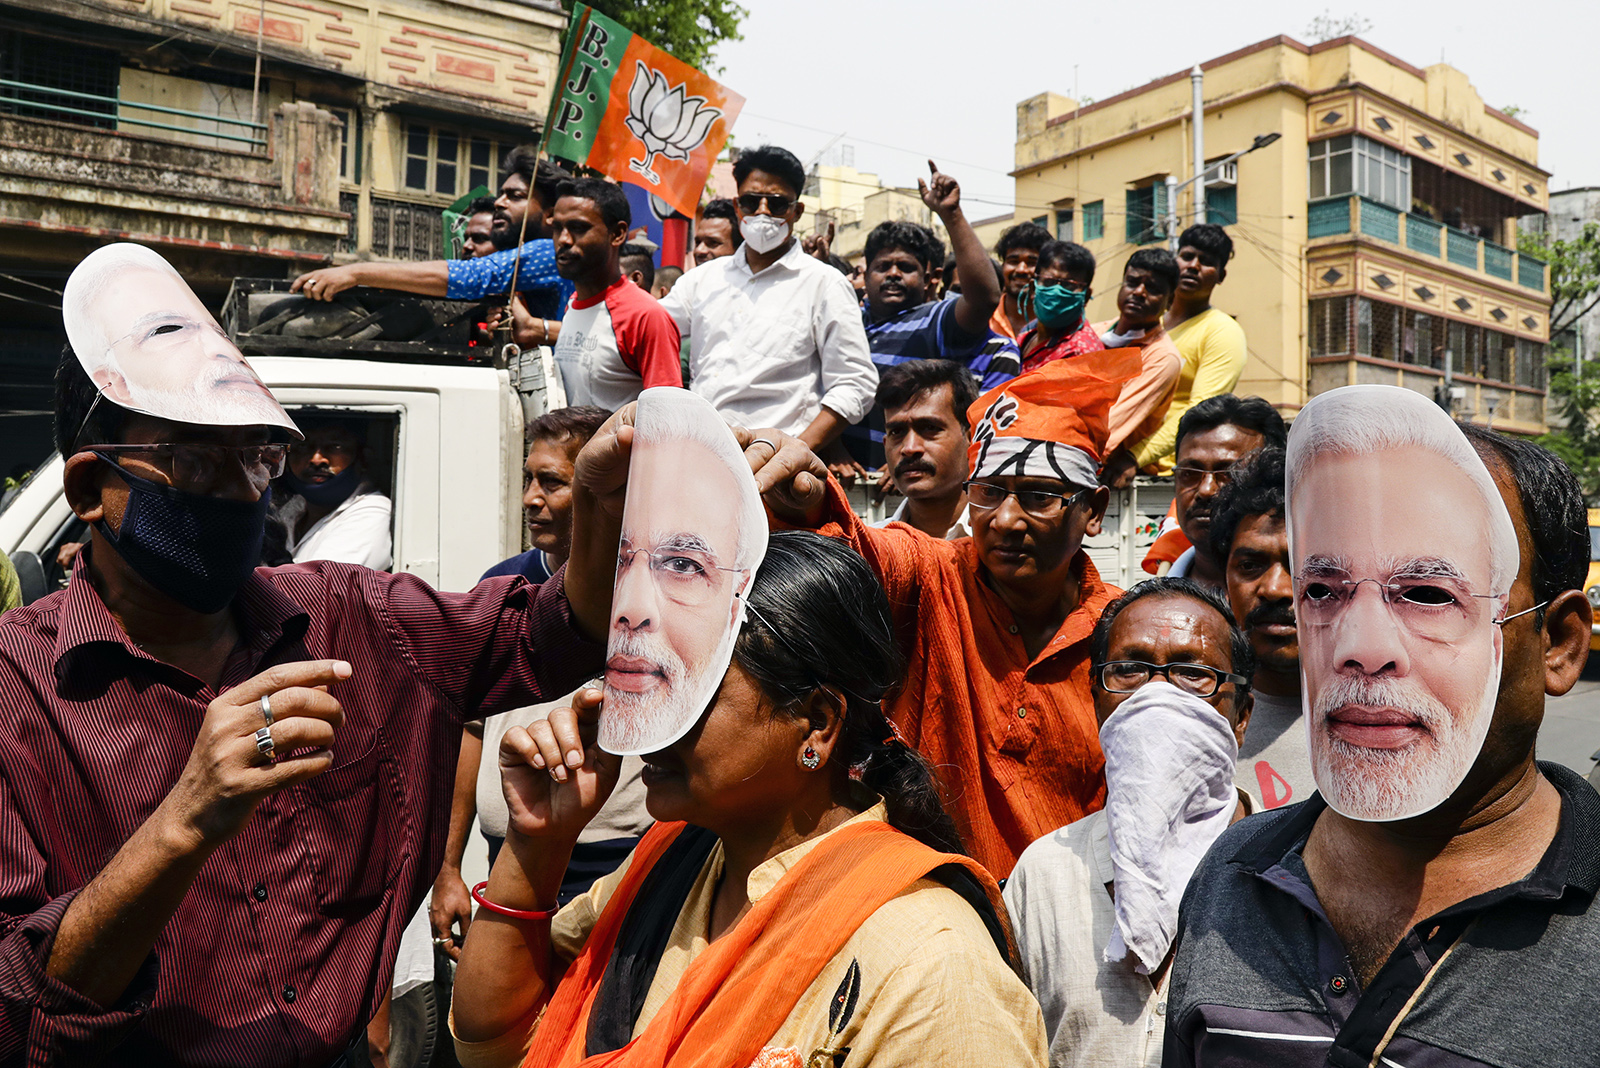 In this March 20, 2021, file photo, supporters of Bharatiya Janata Party wear masks bearing the likeness of Prime Minister Narendra Modi during a campaign rally ahead of elections in West Bengal state in Kolkata, India. Despite clear signs that India was being swamped by another surge of coronavirus infections, Modi refused to cancel the rallies, a major Hindu festival and cricket matches with spectators. The burgeoning crisis has badly dented Modi's carefully cultivated image as an able technocrat. (AP Photo/Bikas Das, File)